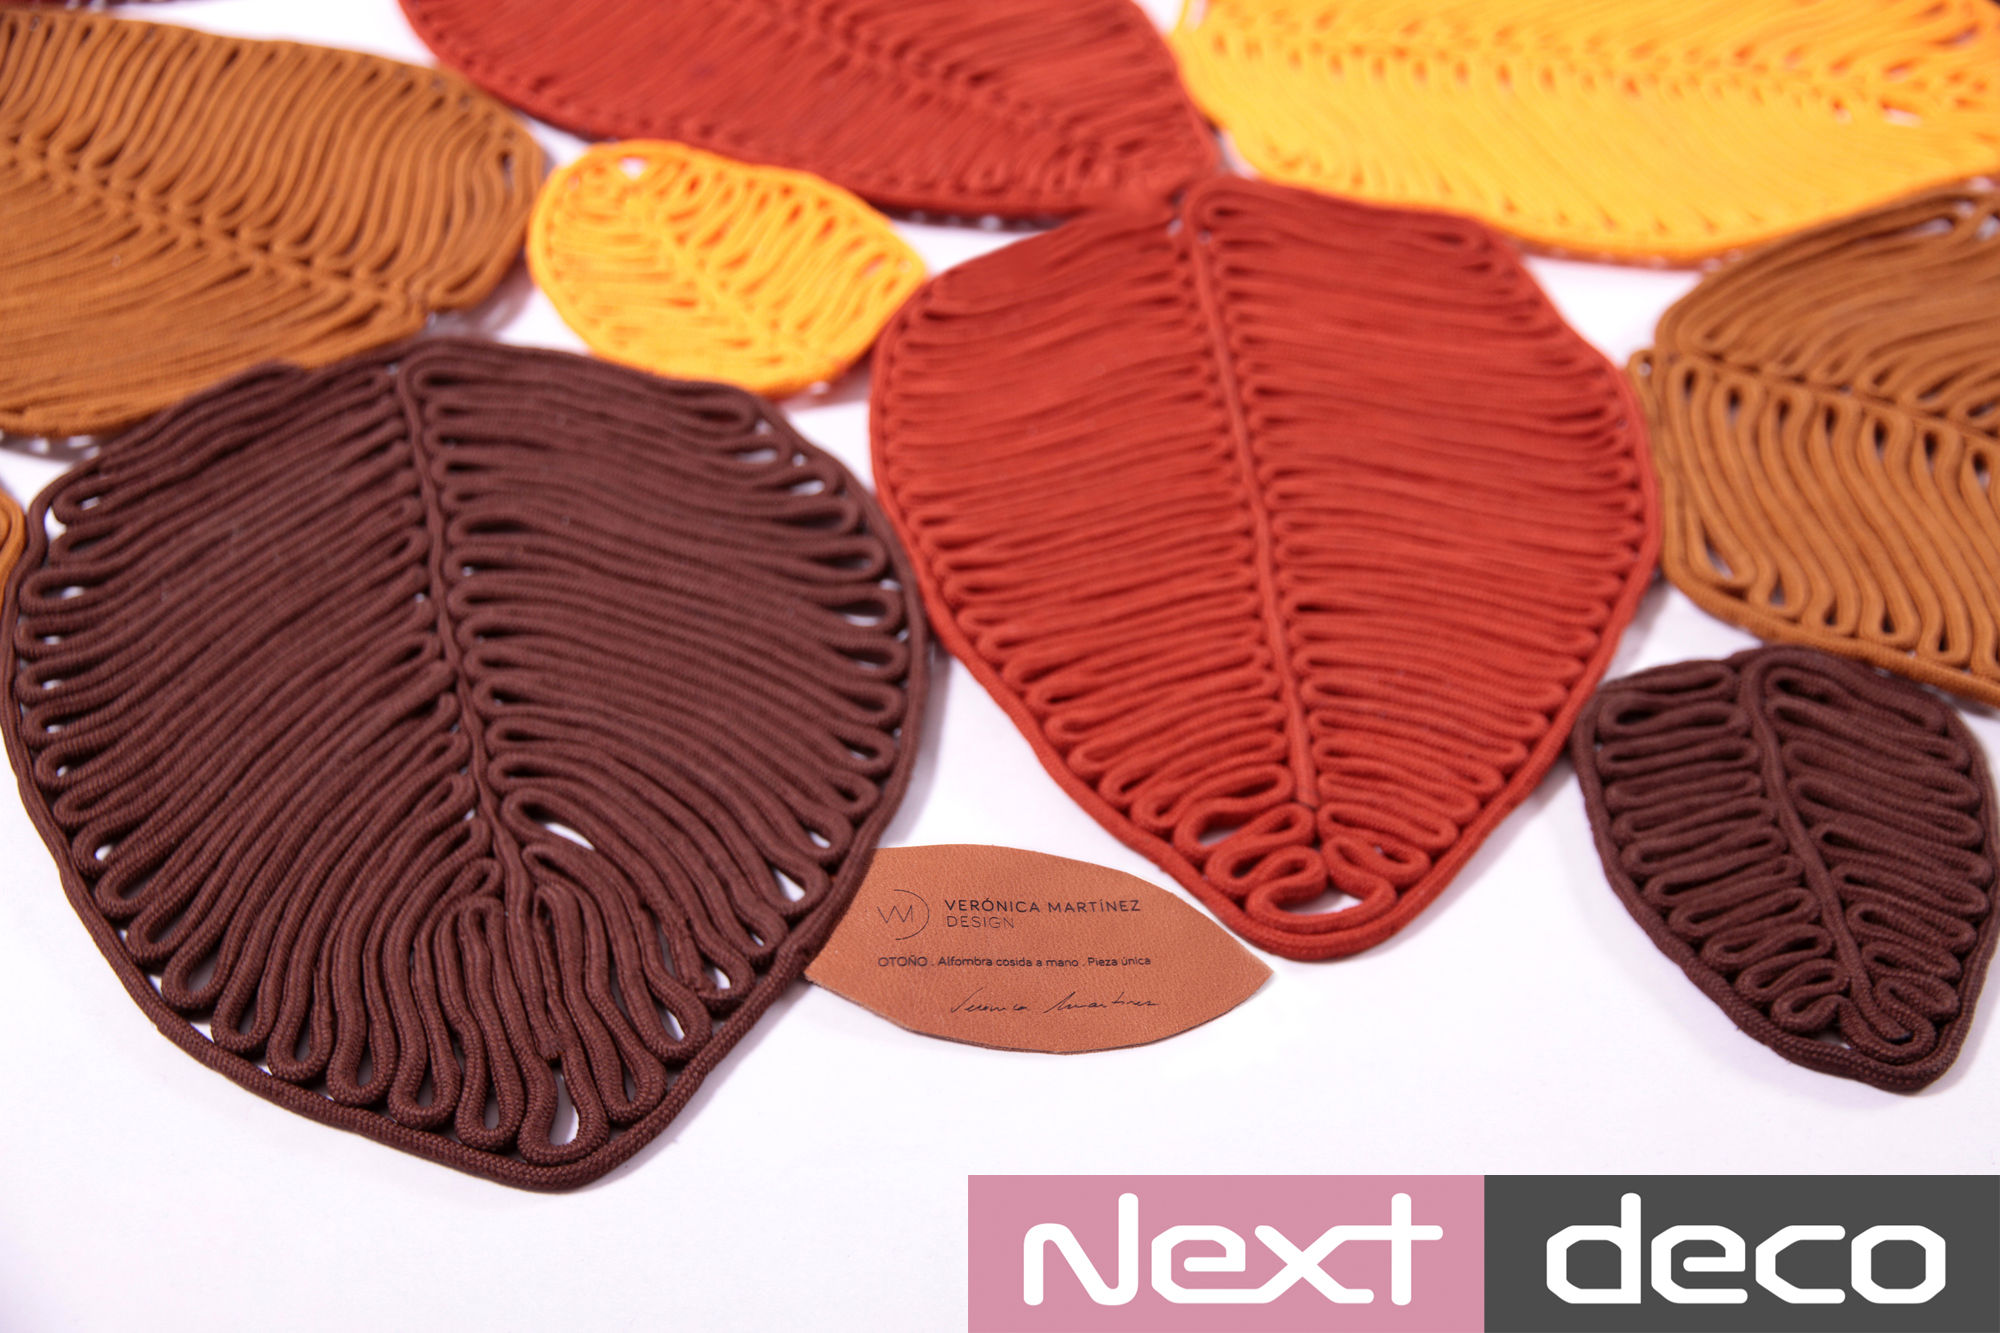 nextdeco-veronica-martinez-autumn-rug-4 copia